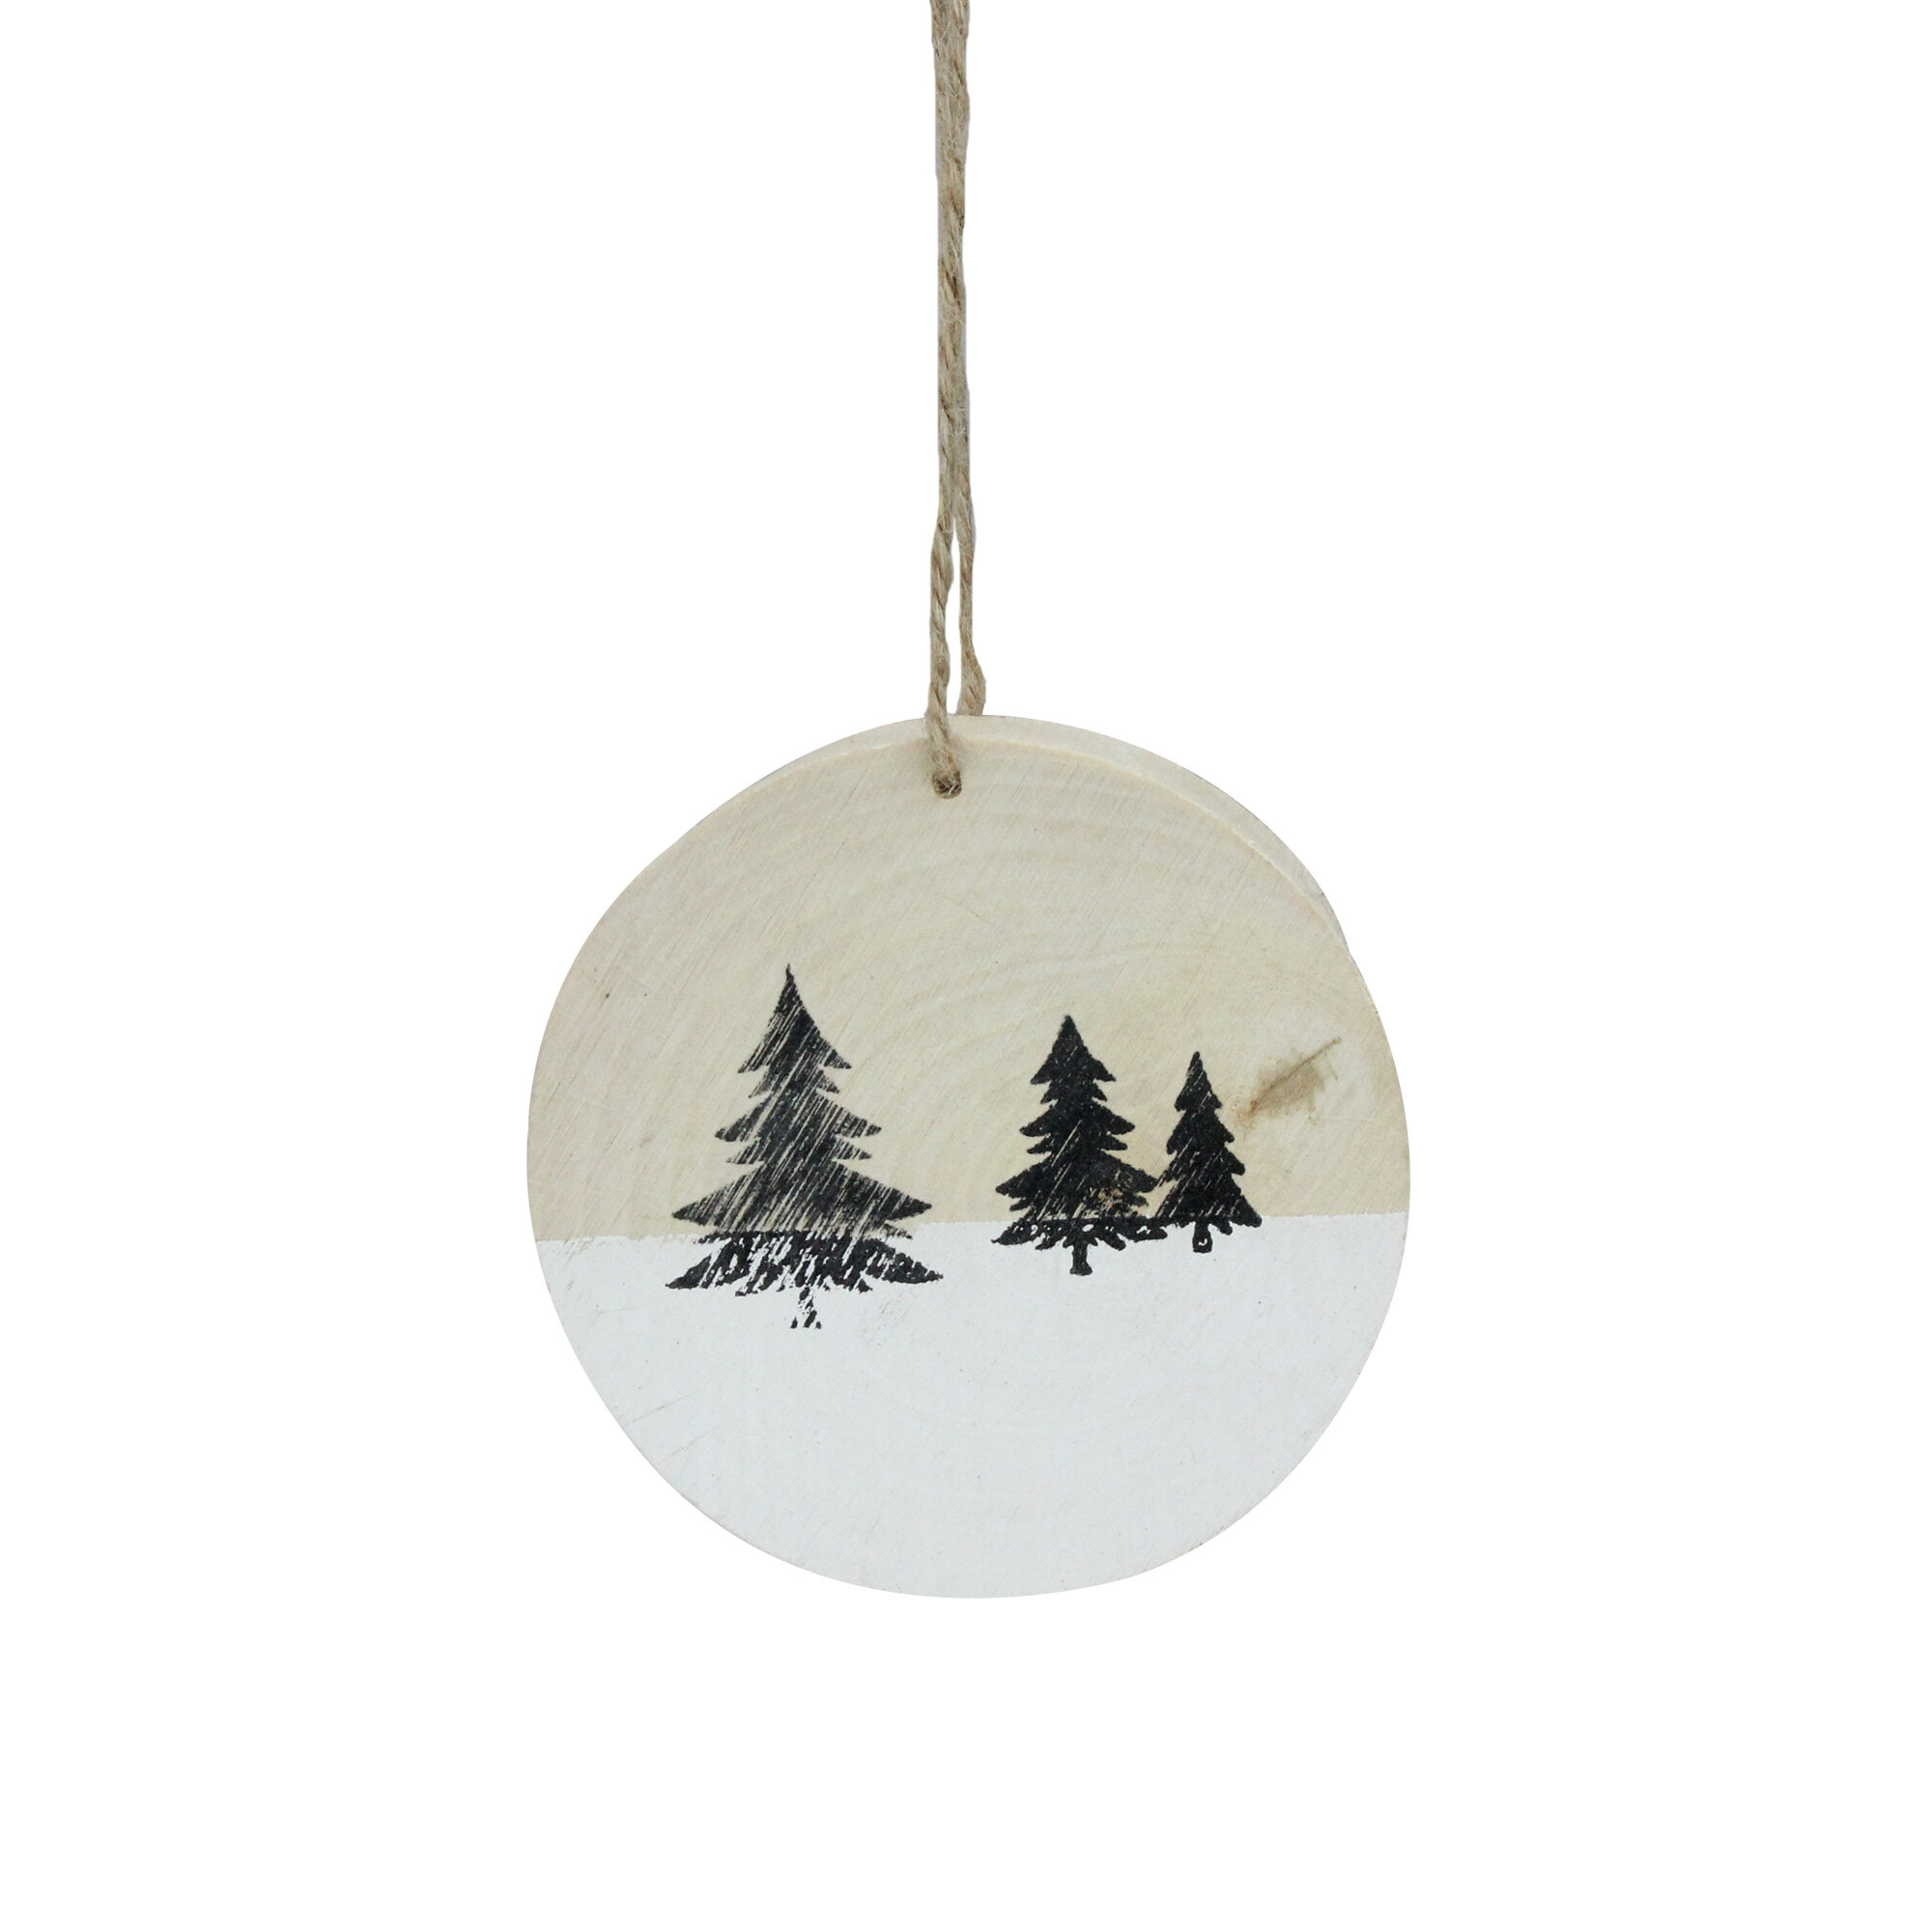 Winter Pine Trees On Wood Disc Christmas Holiday Shaped Ornament Reviews Birch Lane